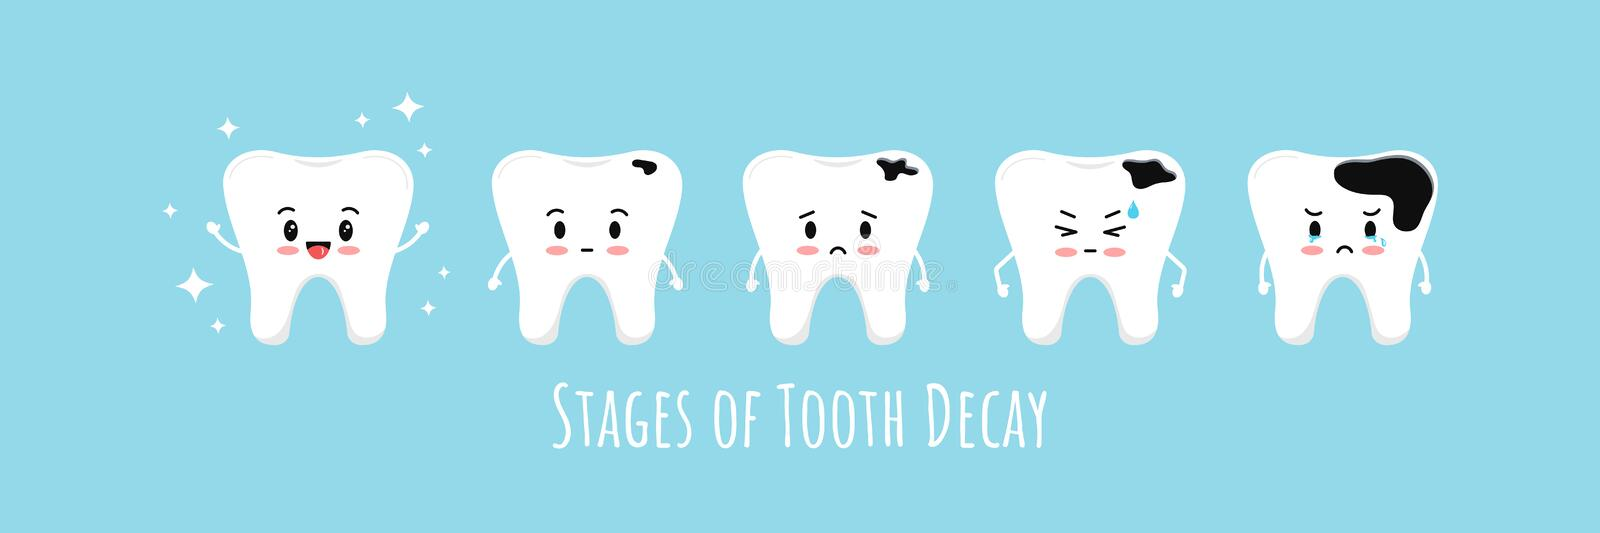 Stages of emoji tooth decay vector icon set. vector illustration